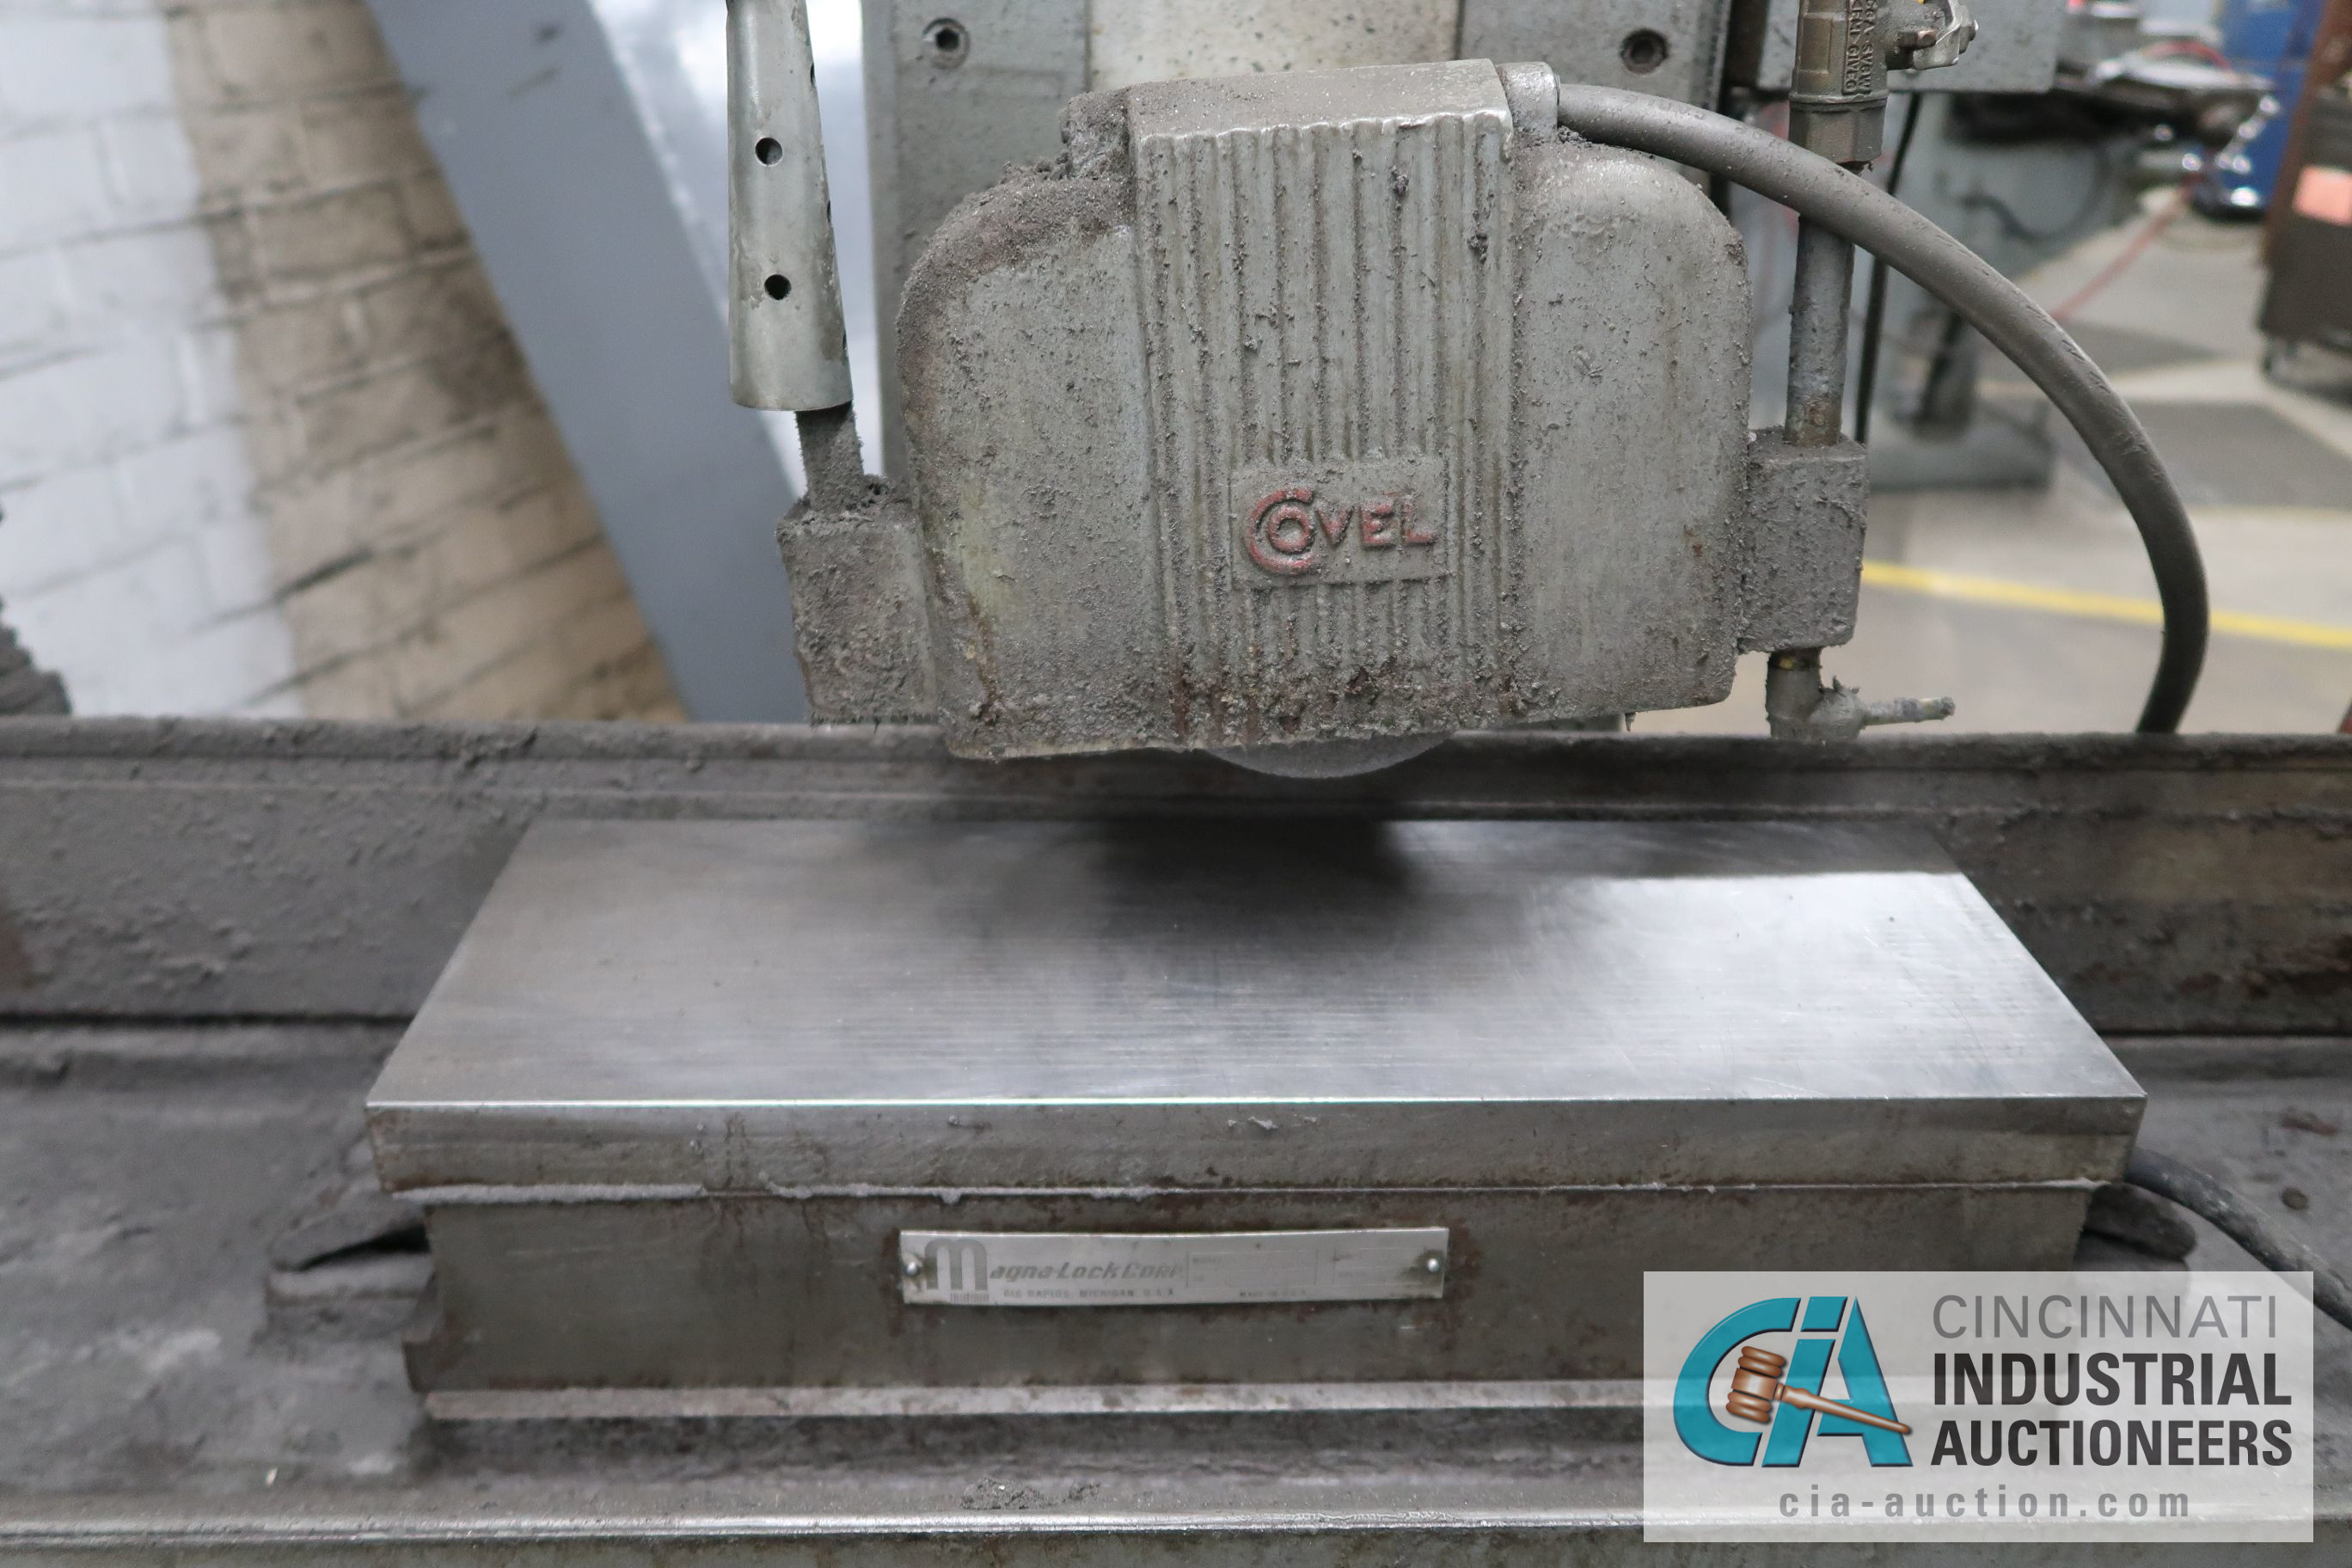 "6"" X 18"" COVEL SURFACE GRINDER; S/N 10H-544, MAGNA-LOCK CORP ELECTROMAGNETIC CHUCK - Image 3 of 6"